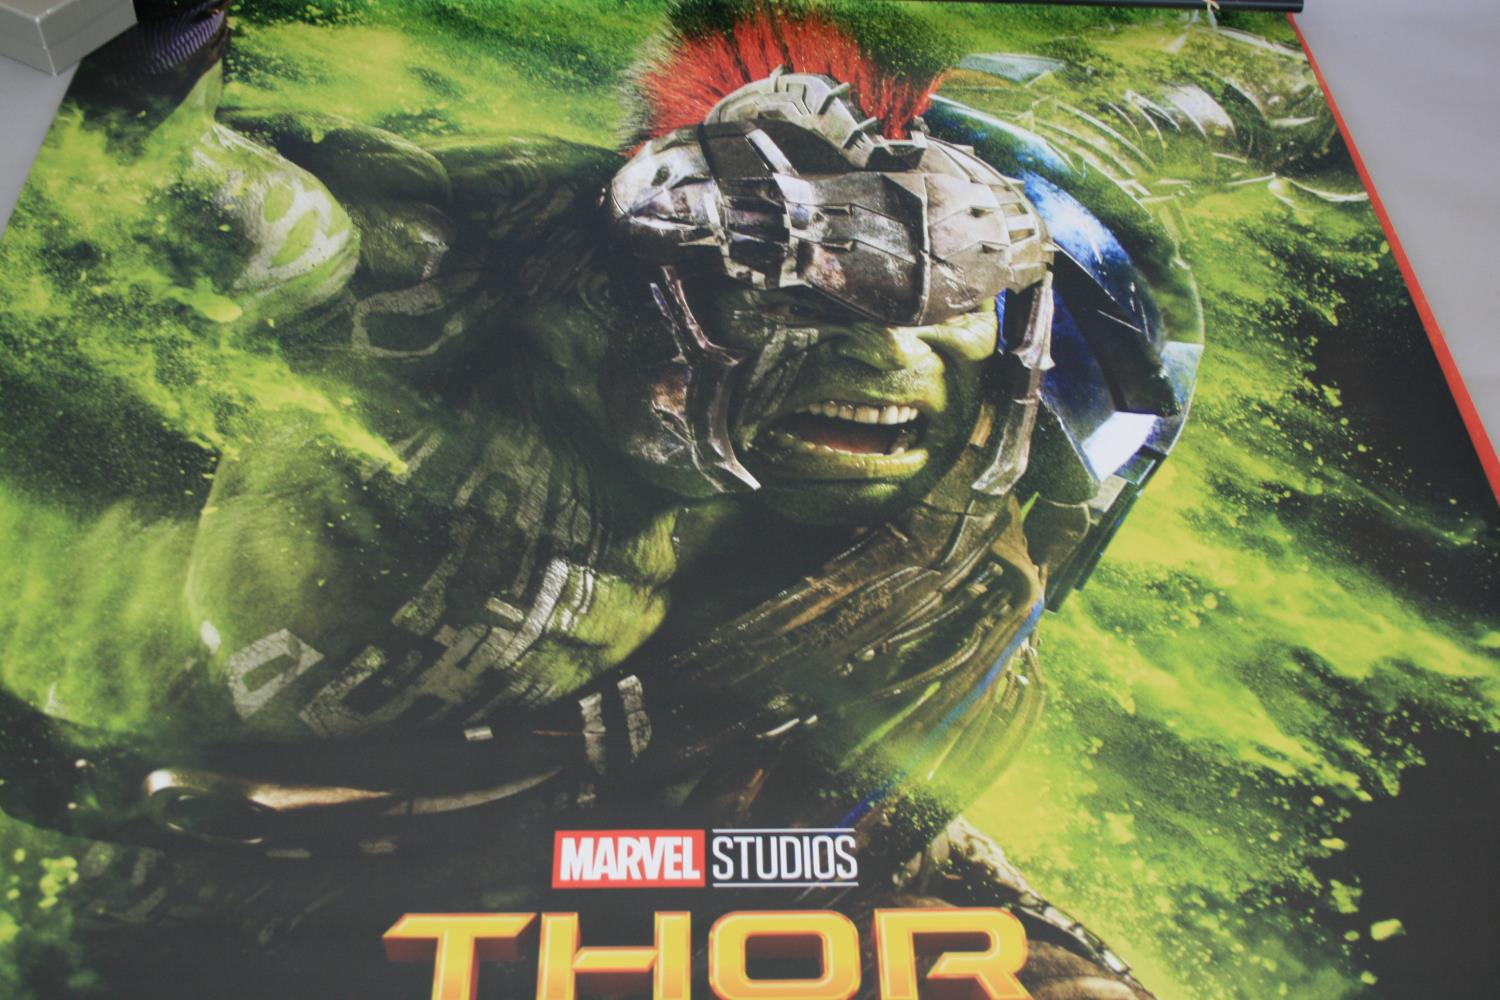 Three large Marvel movies posters (153W x 240H) and selection of small cinema posters - Image 4 of 7